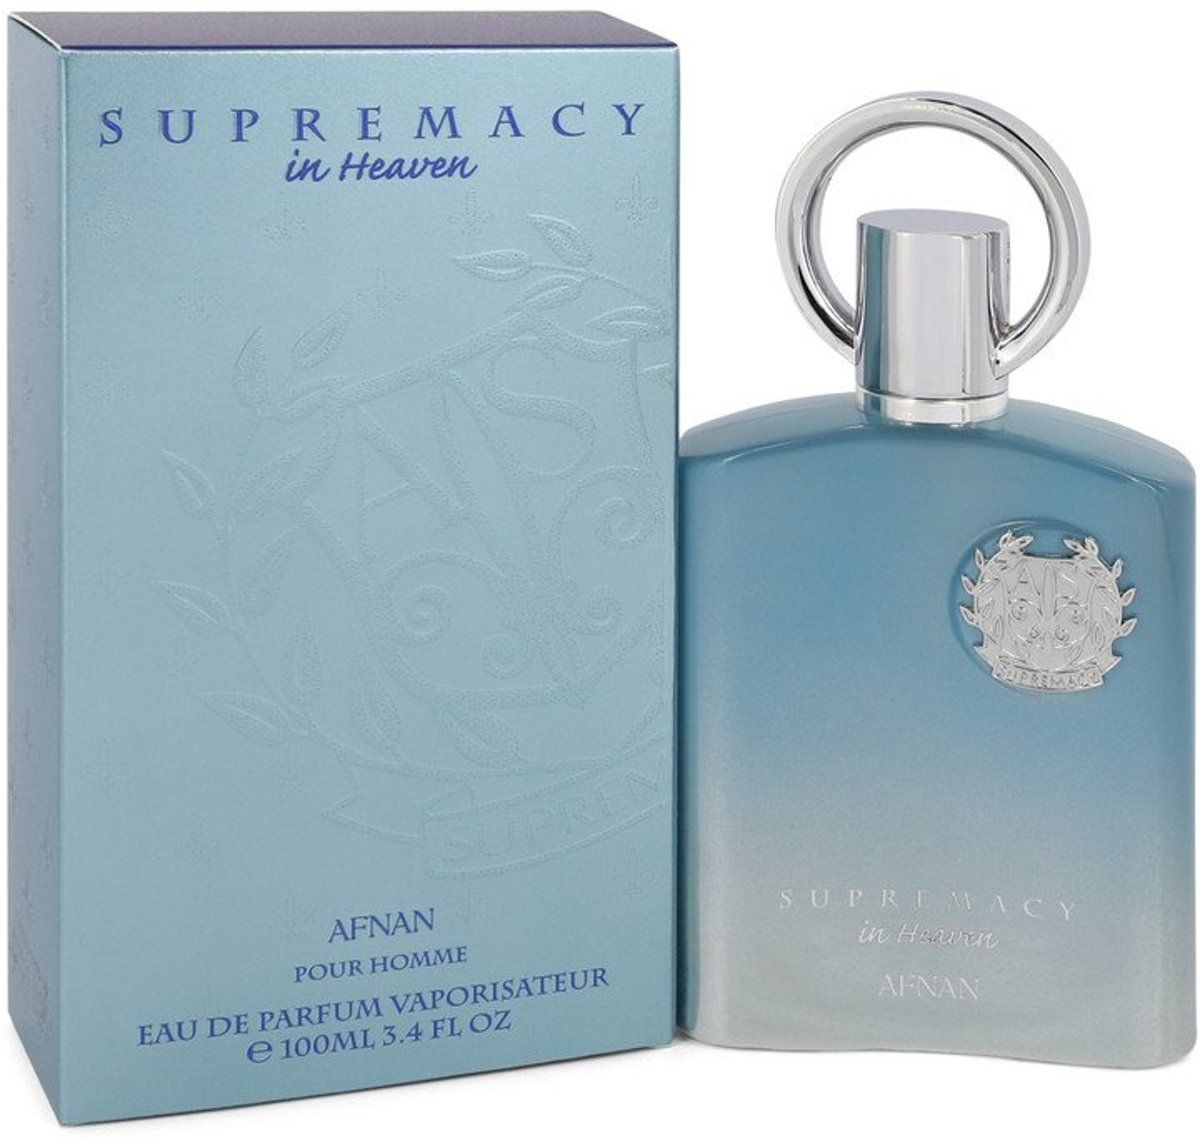 Afnan Supremacy In Heaven eau de parfum spray 100 ml